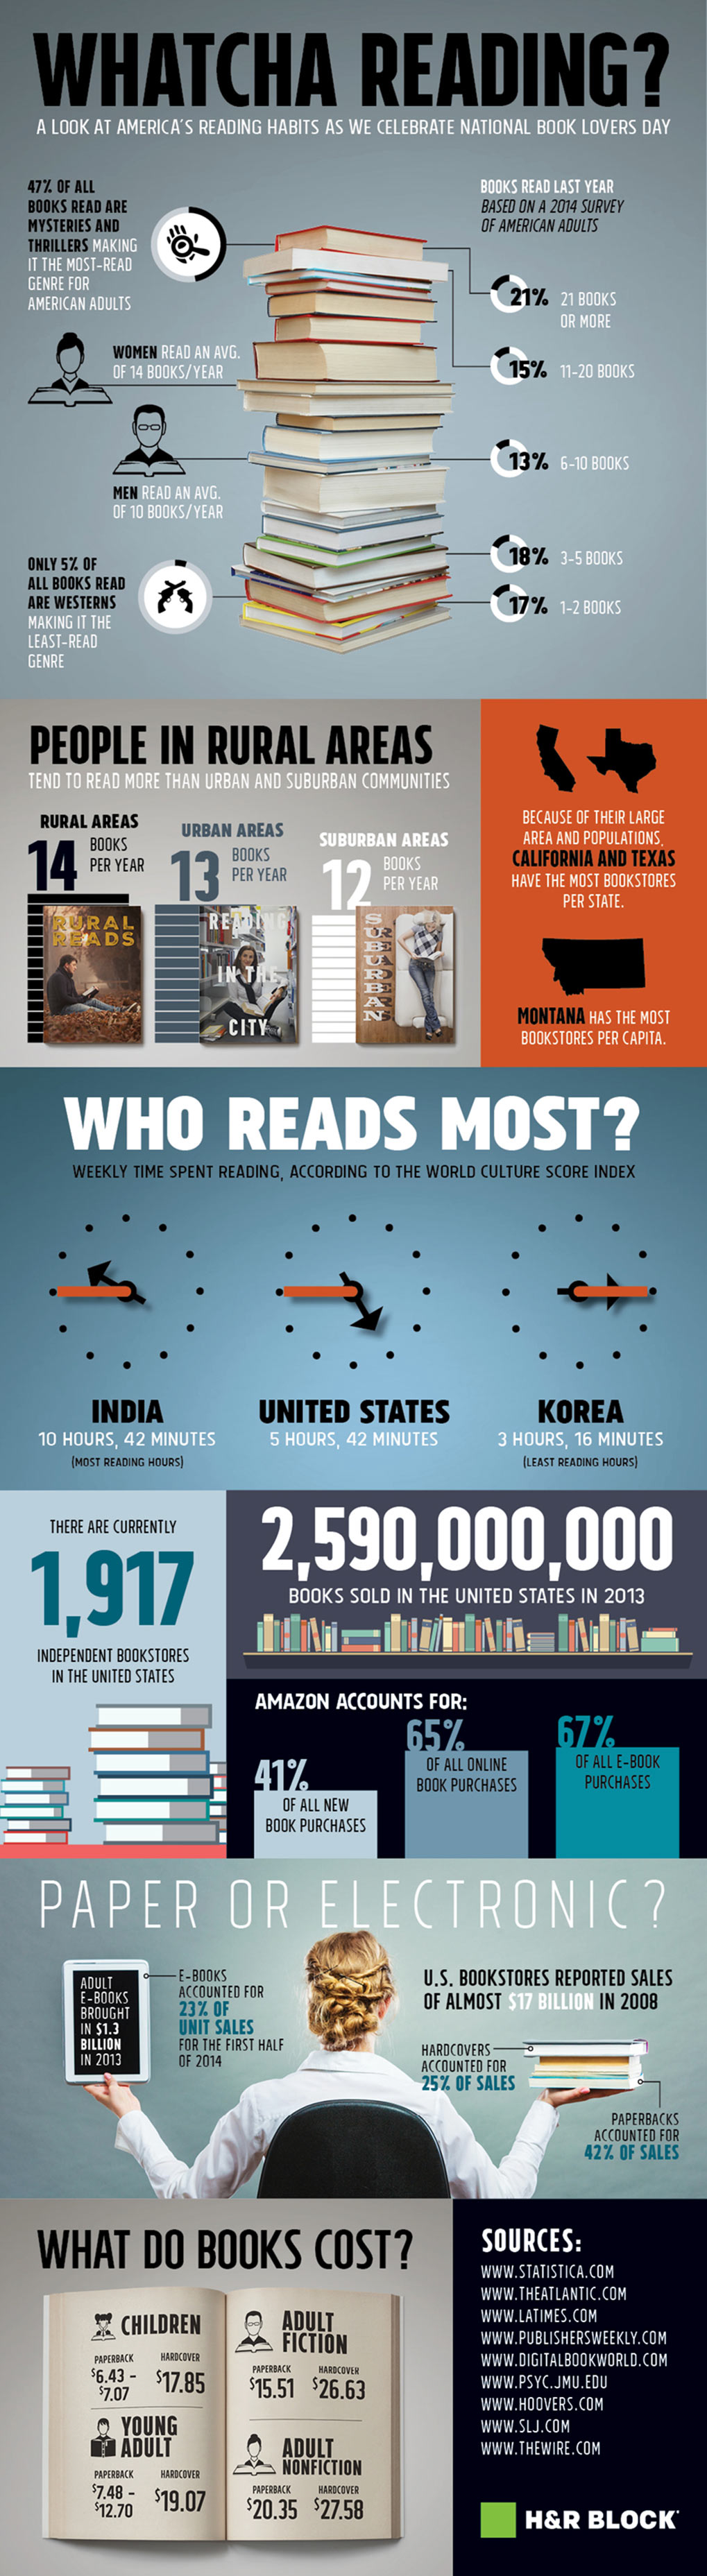 Whatcha Reading A Look At America's Reading Habits - Infographic